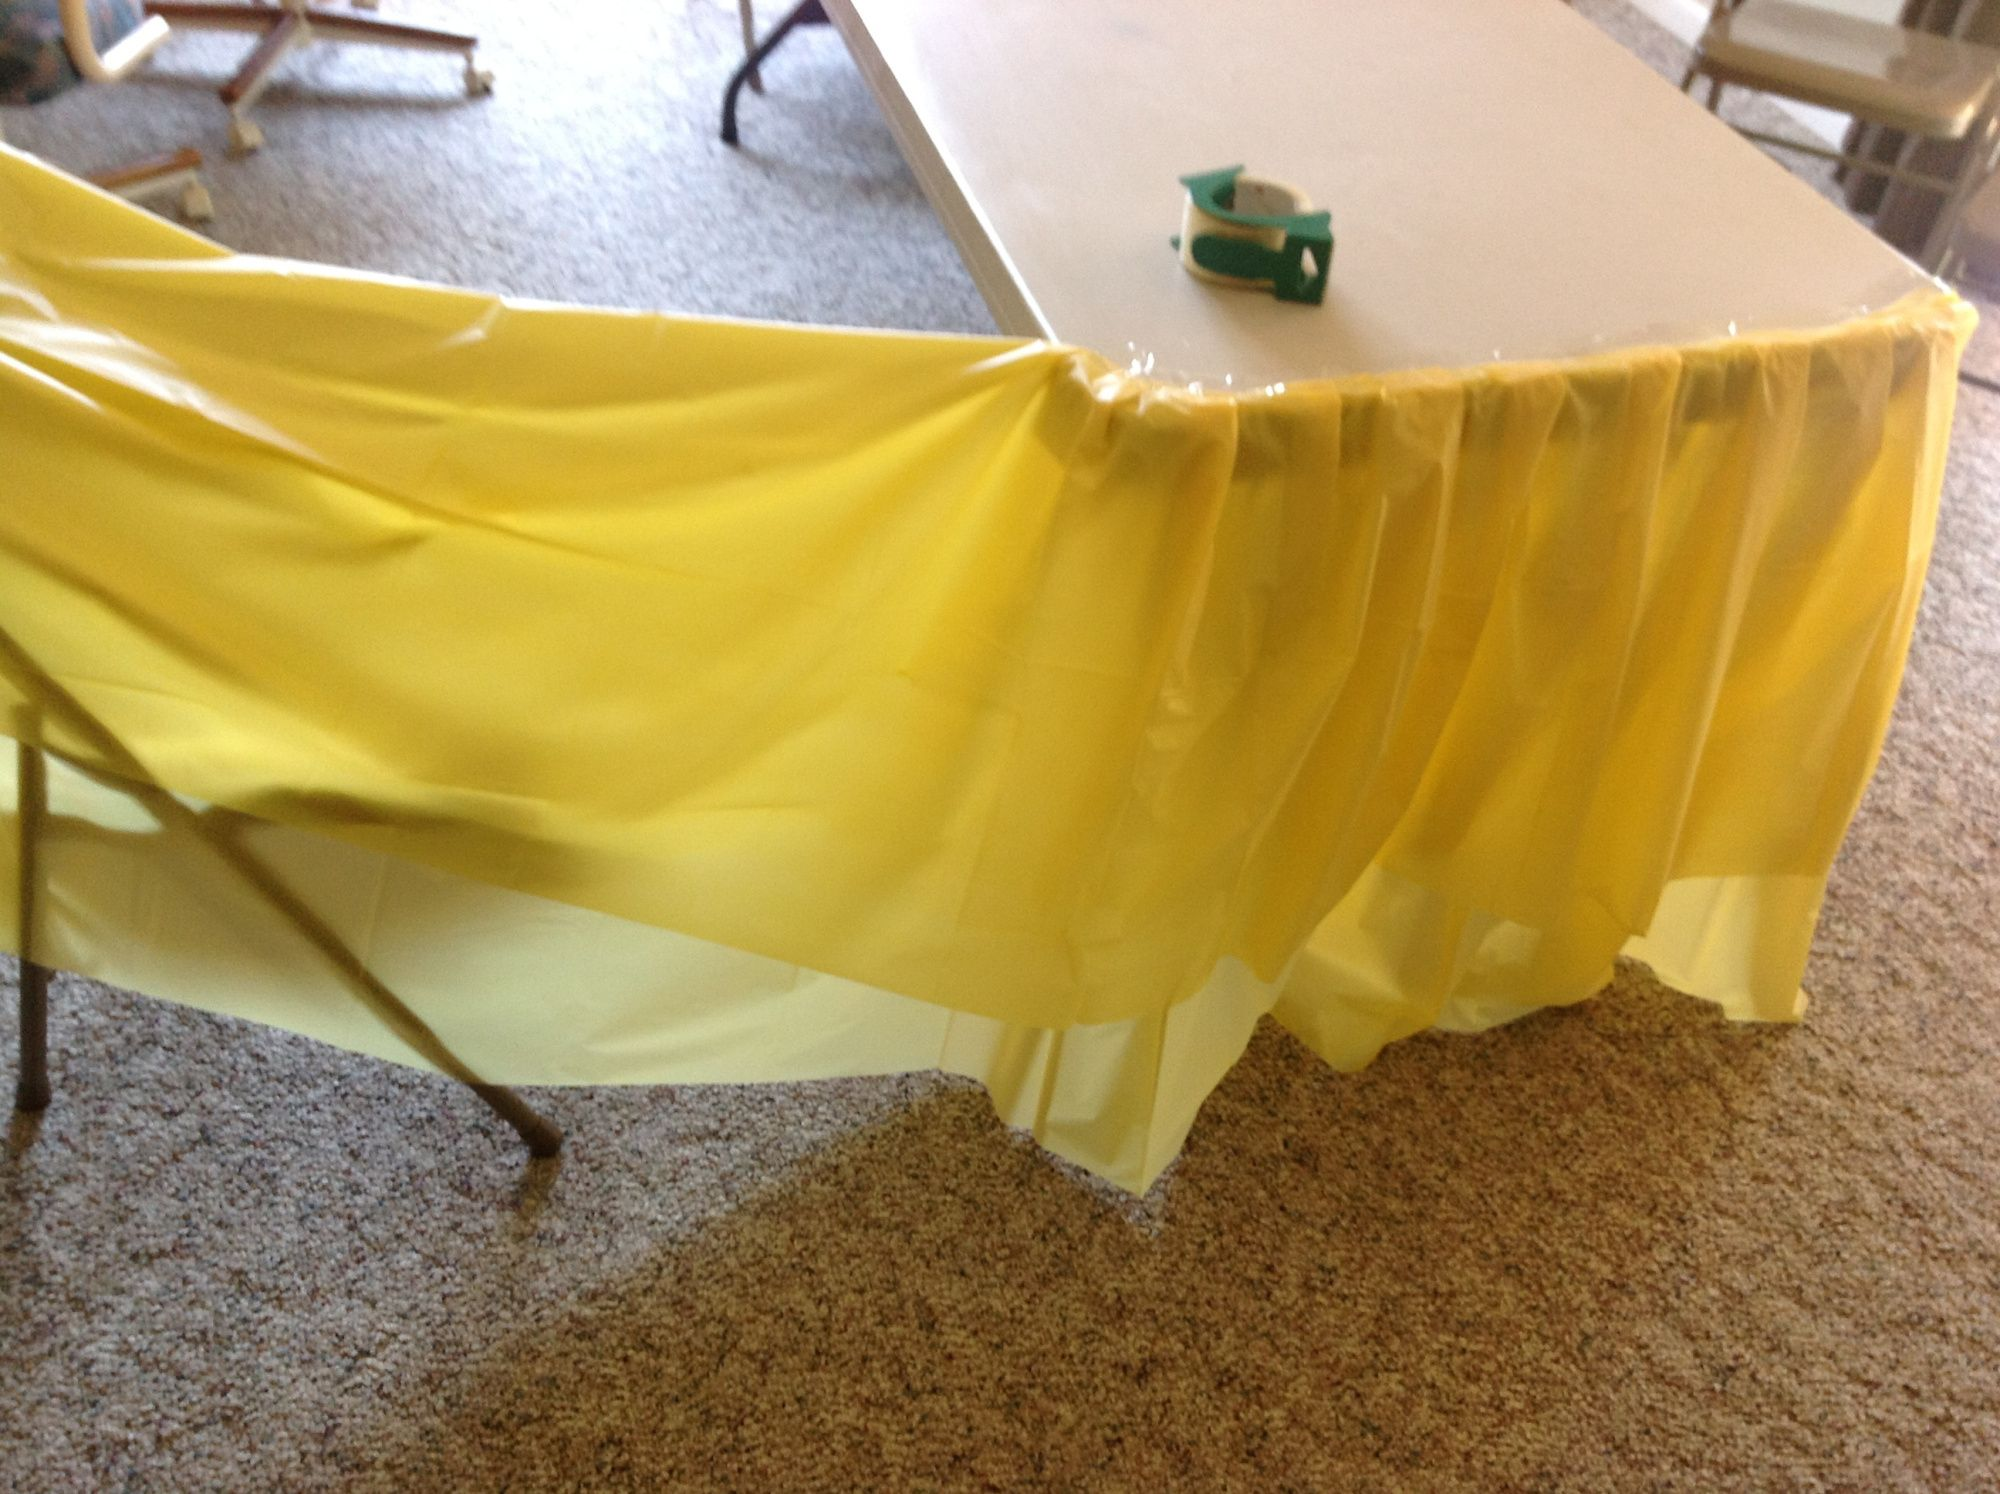 How To Make A Quot Ruffled Quot Tablecloth From Dollar Store